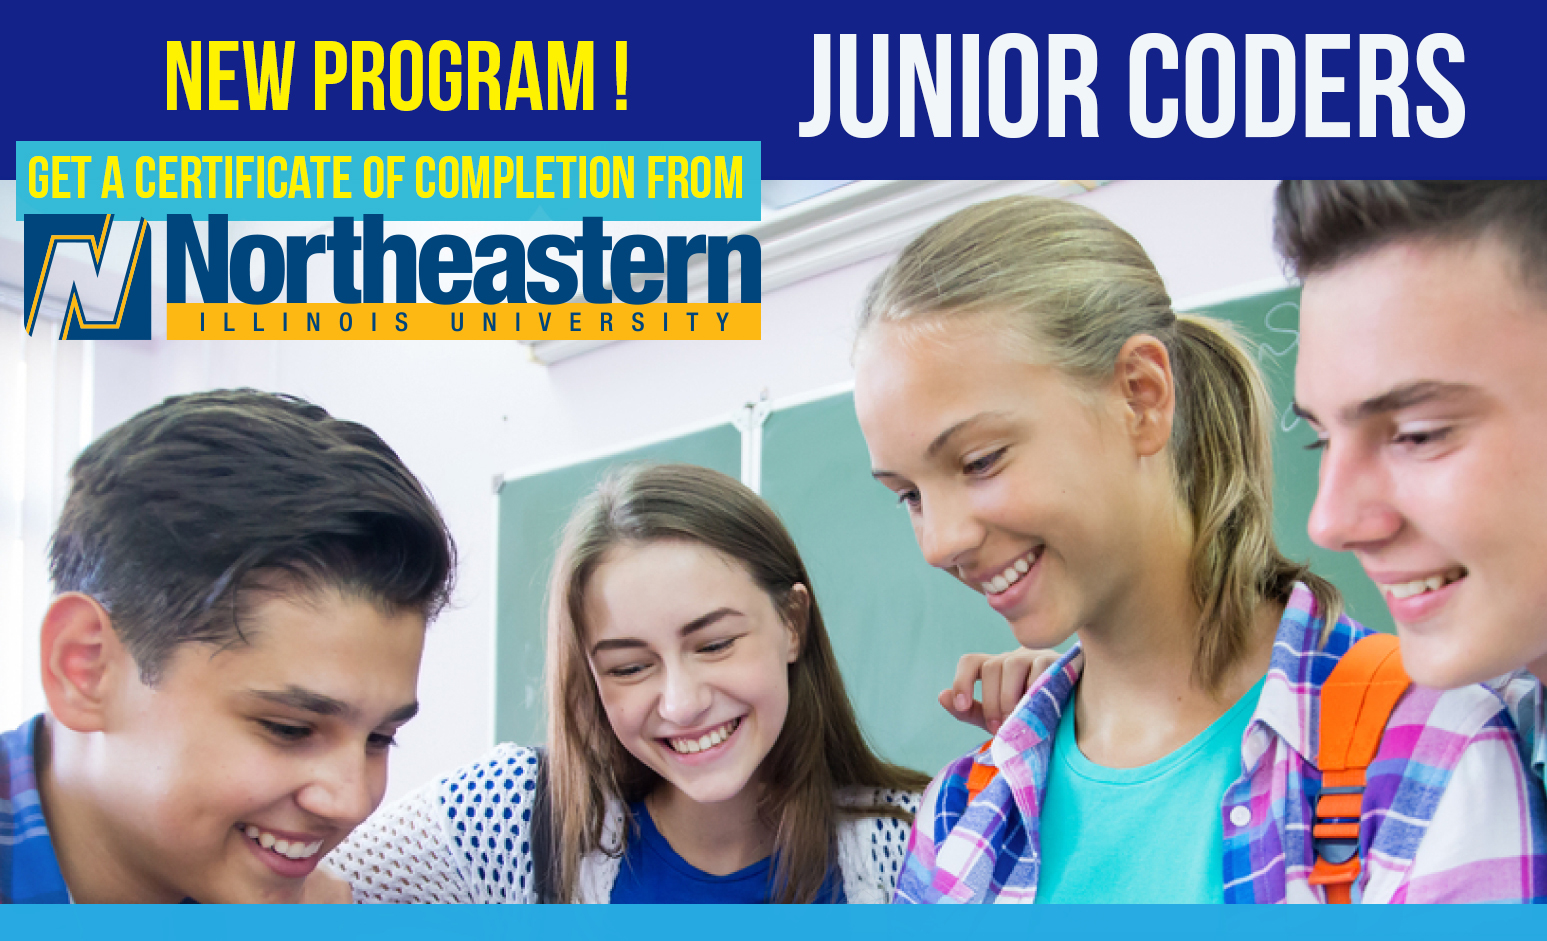 NEW! Junior Coders (Ages 12-18) - Earn a Certificate of Completion from Northeastern Illinois University